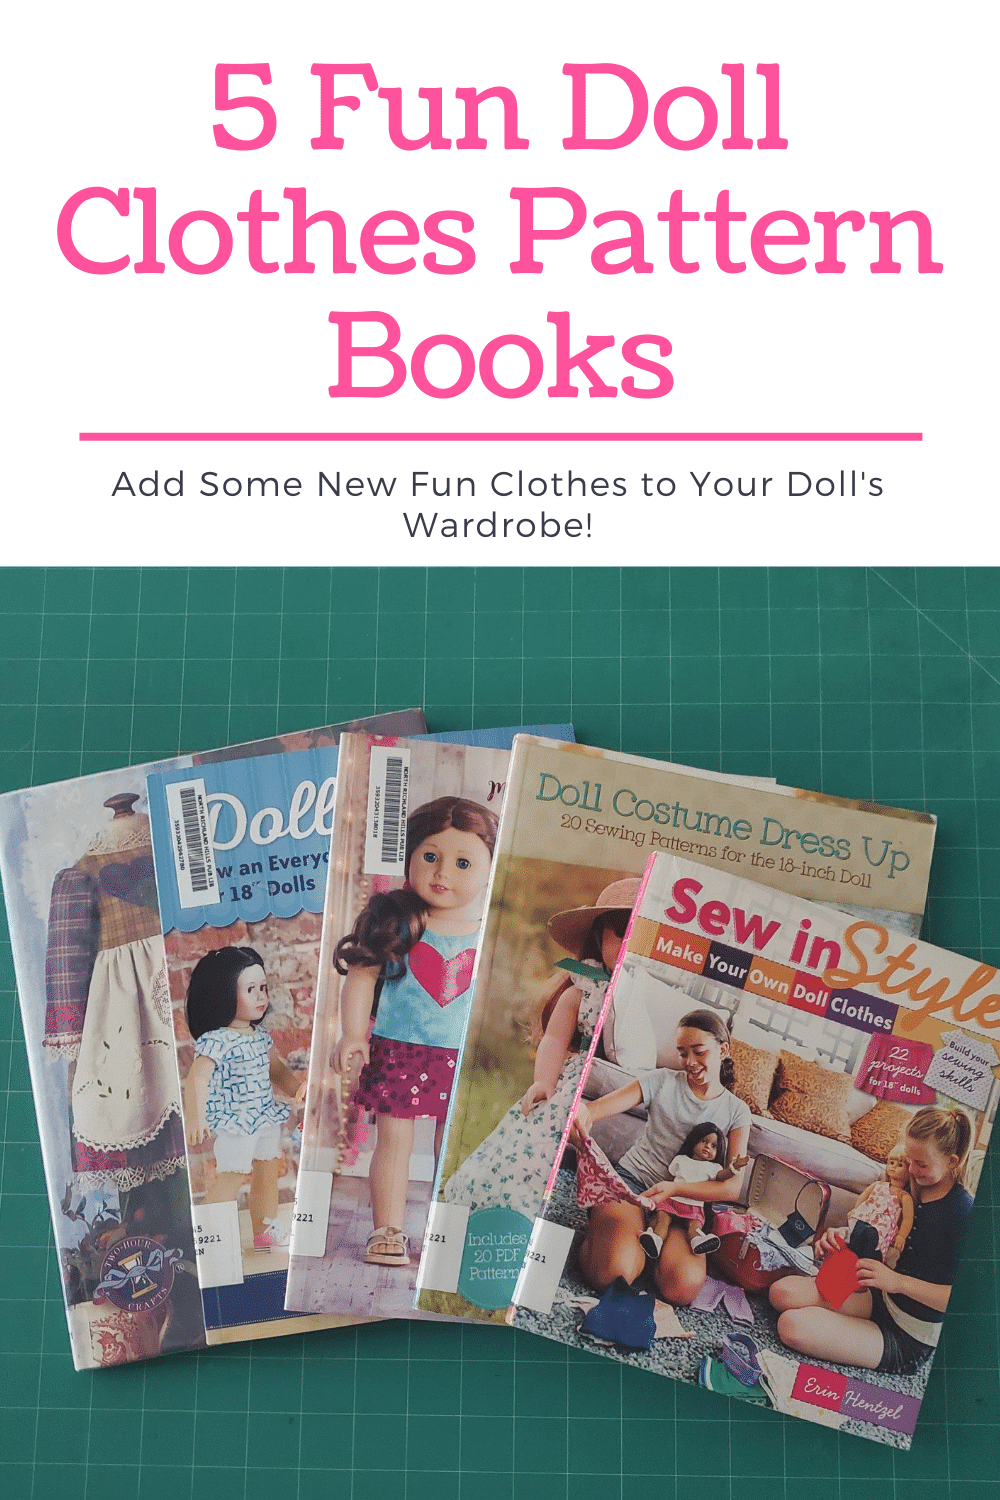 My Favorite Doll Clothes pattern Books